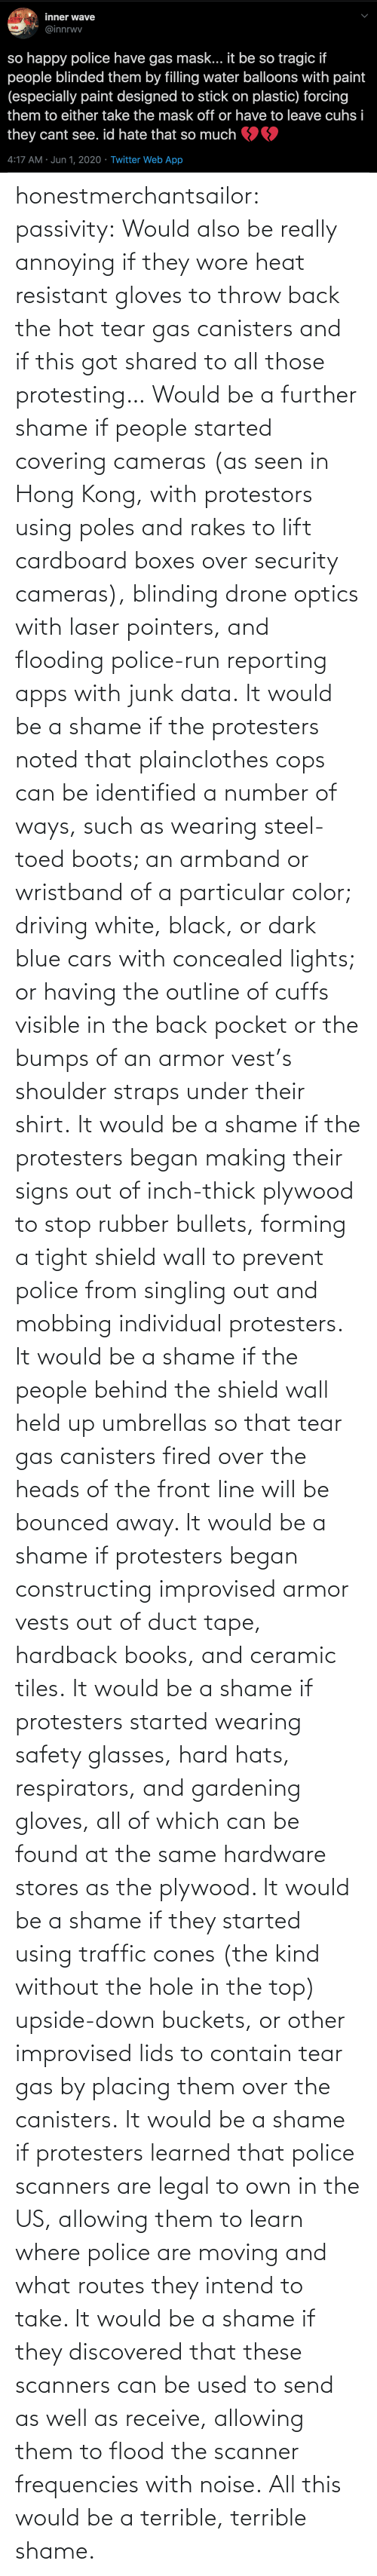 seen: honestmerchantsailor:  passivity: Would also be really annoying if they wore heat resistant gloves to throw back the hot tear gas canisters and if this got shared to all those protesting… Would be a further shame if people started covering cameras (as seen in Hong Kong, with protestors using poles and rakes to lift cardboard boxes over security cameras), blinding drone optics with laser pointers, and flooding police-run reporting apps with junk data. It would be a shame if the protesters noted that plainclothes cops can be identified a number of ways, such as wearing steel-toed boots; an armband or wristband of a particular color; driving white, black, or dark blue cars with concealed lights; or having the outline of cuffs visible in the back pocket or the bumps of an armor vest's shoulder straps under their shirt. It would be a shame if the protesters began making their signs out of inch-thick plywood to stop rubber bullets, forming a tight shield wall to prevent police from singling out and mobbing individual protesters. It would be a shame if the people behind the shield wall held up umbrellas so that tear gas canisters fired over the heads of the front line will be bounced away. It would be a shame if protesters began constructing improvised armor vests out of duct tape, hardback books, and ceramic tiles. It would be a shame if protesters started wearing safety glasses, hard hats, respirators, and gardening gloves, all of which can be found at the same hardware stores as the plywood. It would be a shame if they started using traffic cones (the kind without the hole in the top) upside-down buckets, or other improvised lids to contain tear gas by placing them over the canisters. It would be a shame if protesters learned that police scanners are legal to own in the US, allowing them to learn where police are moving and what routes they intend to take. It would be a shame if they discovered that these scanners can be used to send as well as receive, allowing them to flood the scanner frequencies with noise. All this would be a terrible, terrible shame.